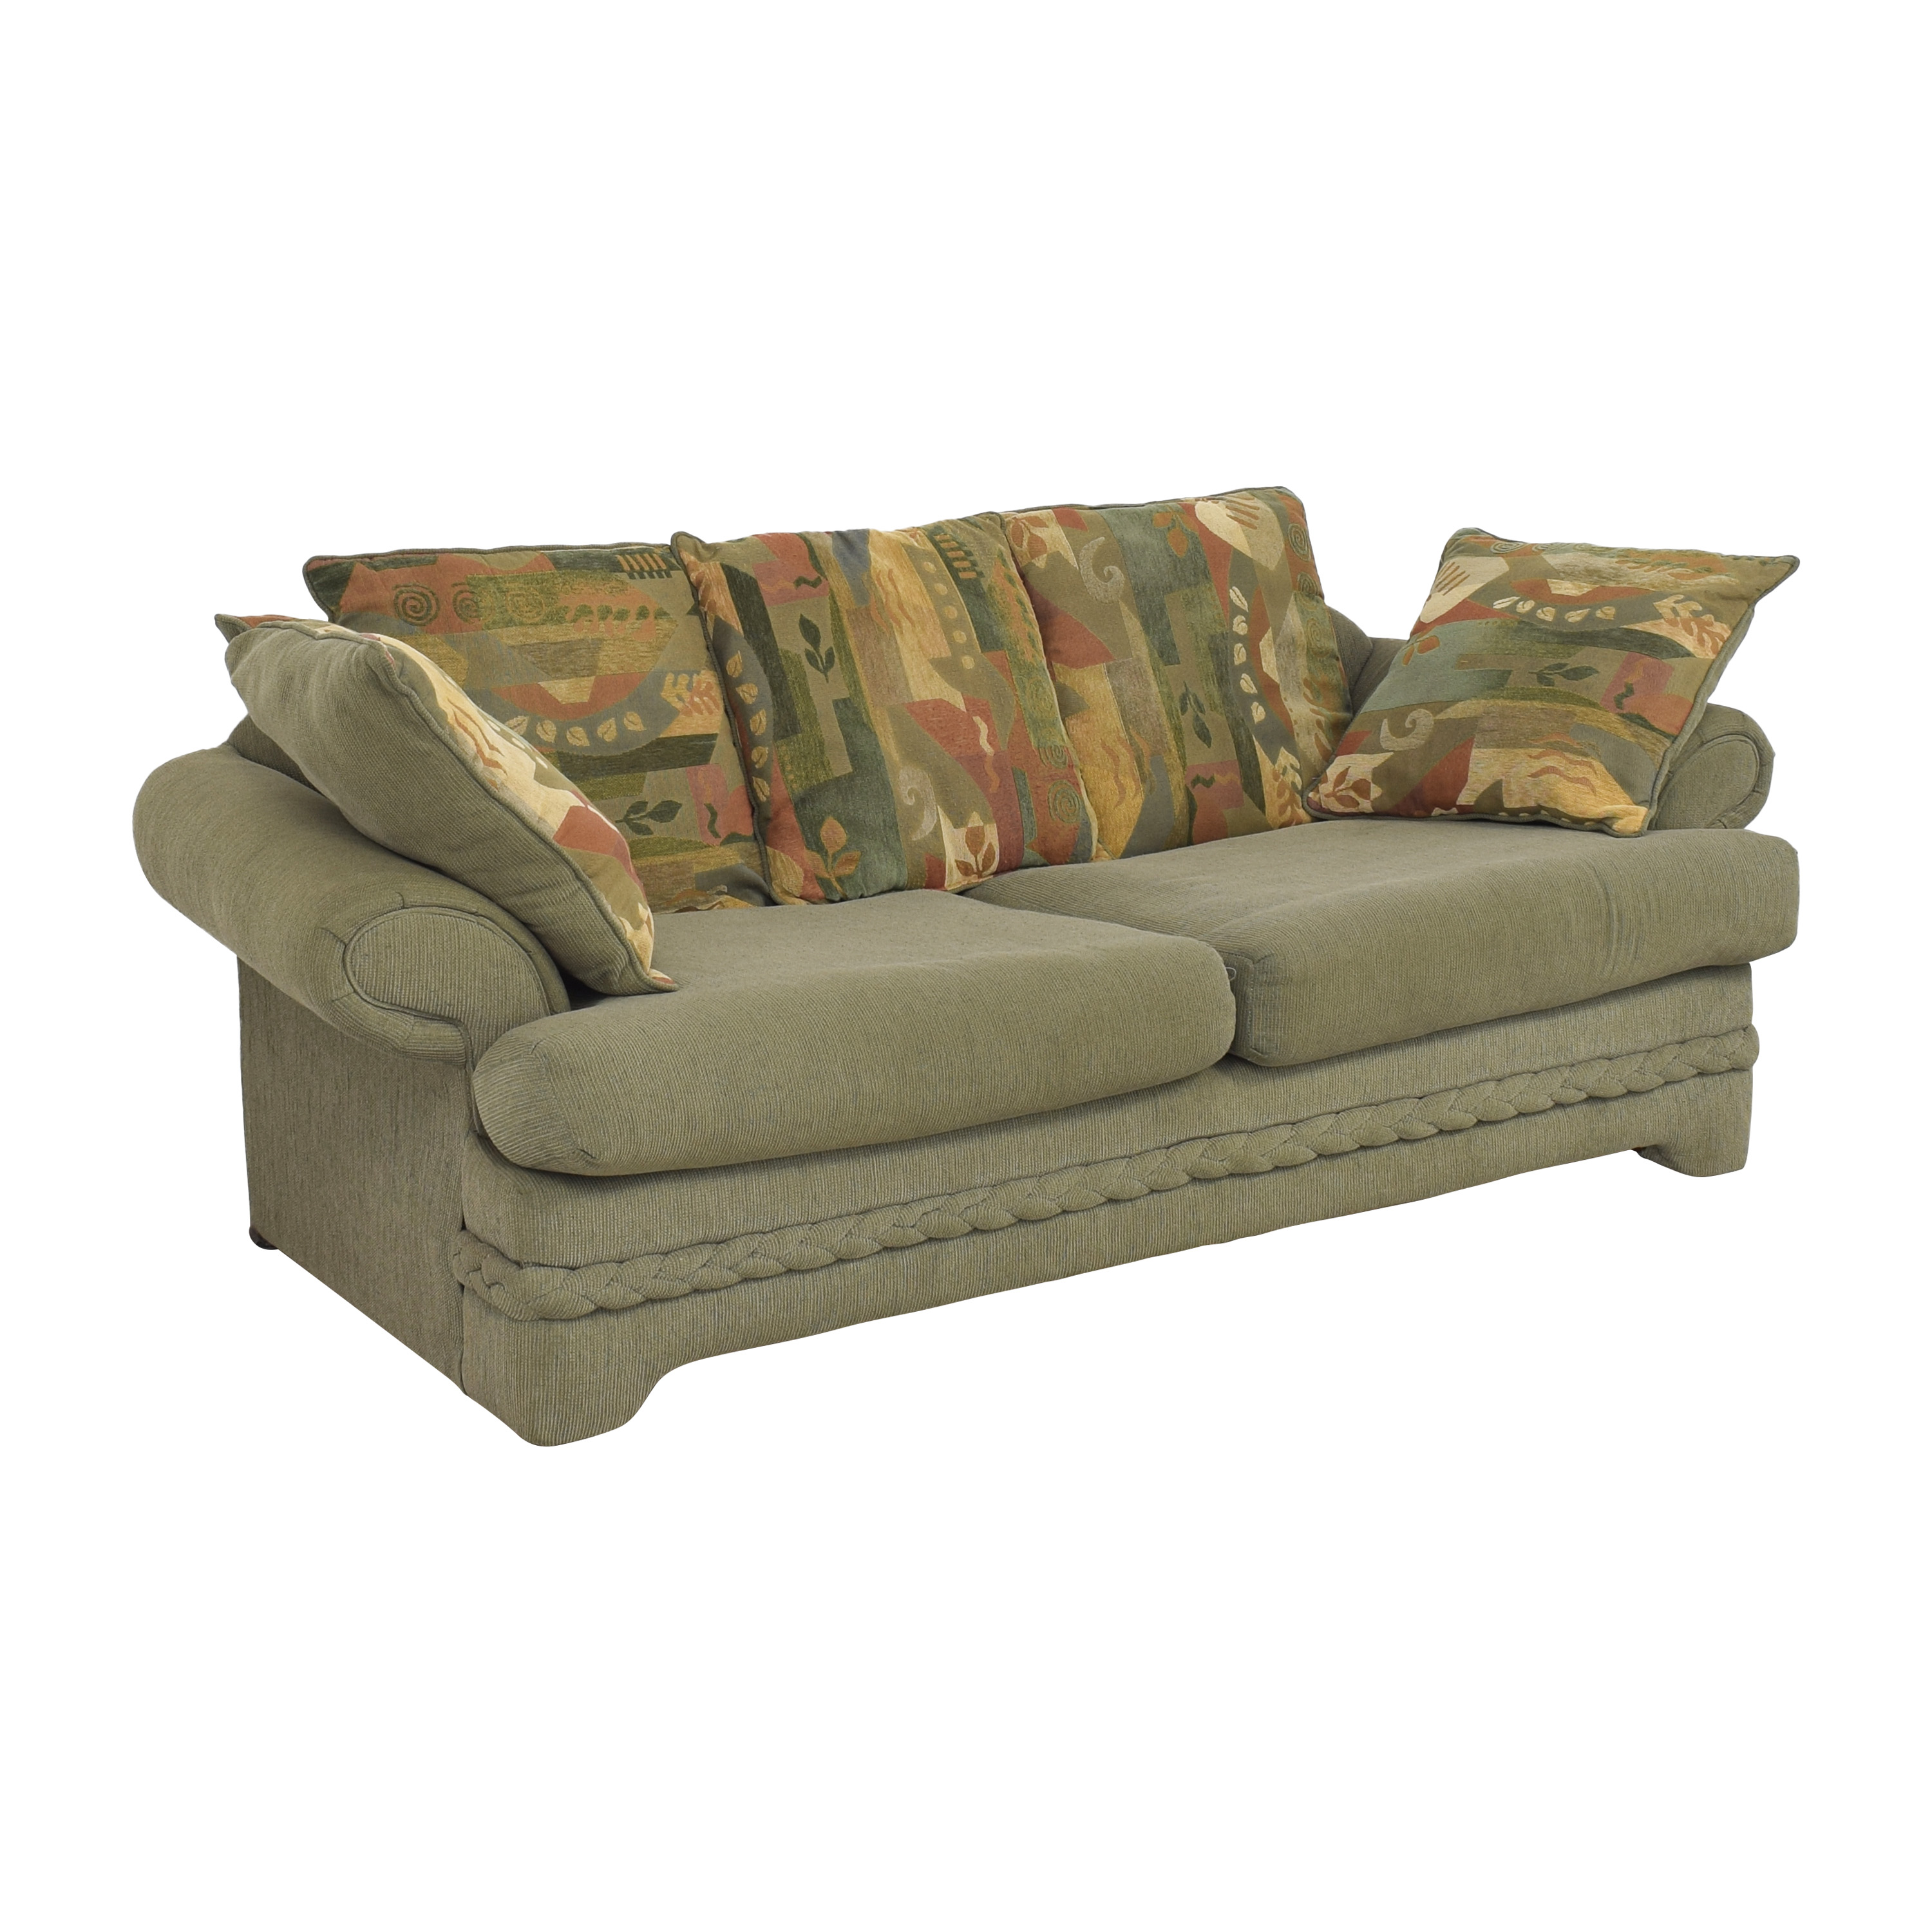 Two Cushion Sofa with Pillows for sale